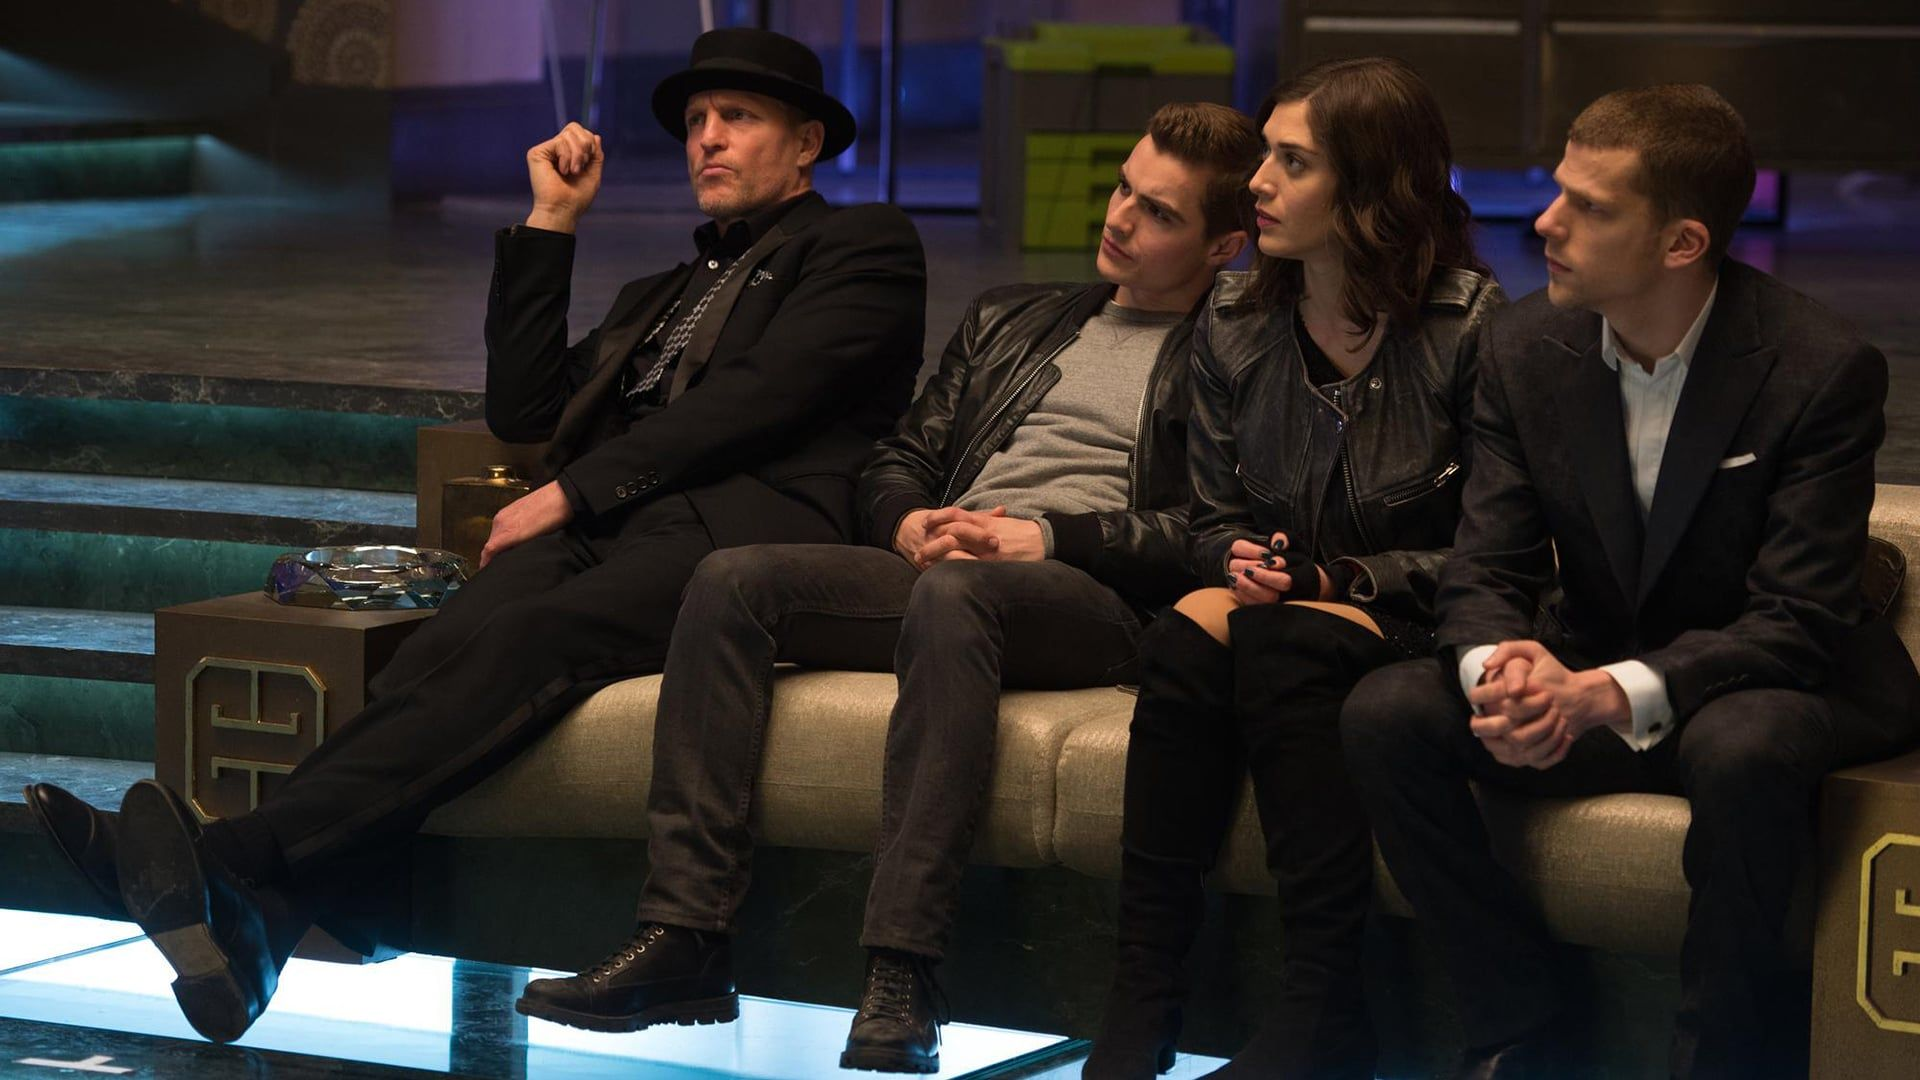 Now You See Me 2 2016 Putlocker Film Complet Streaming De Fire Ryttere Er Tilbage Et Ar Efter Dere Full Movies Online Free Free Movies Online Full Movies